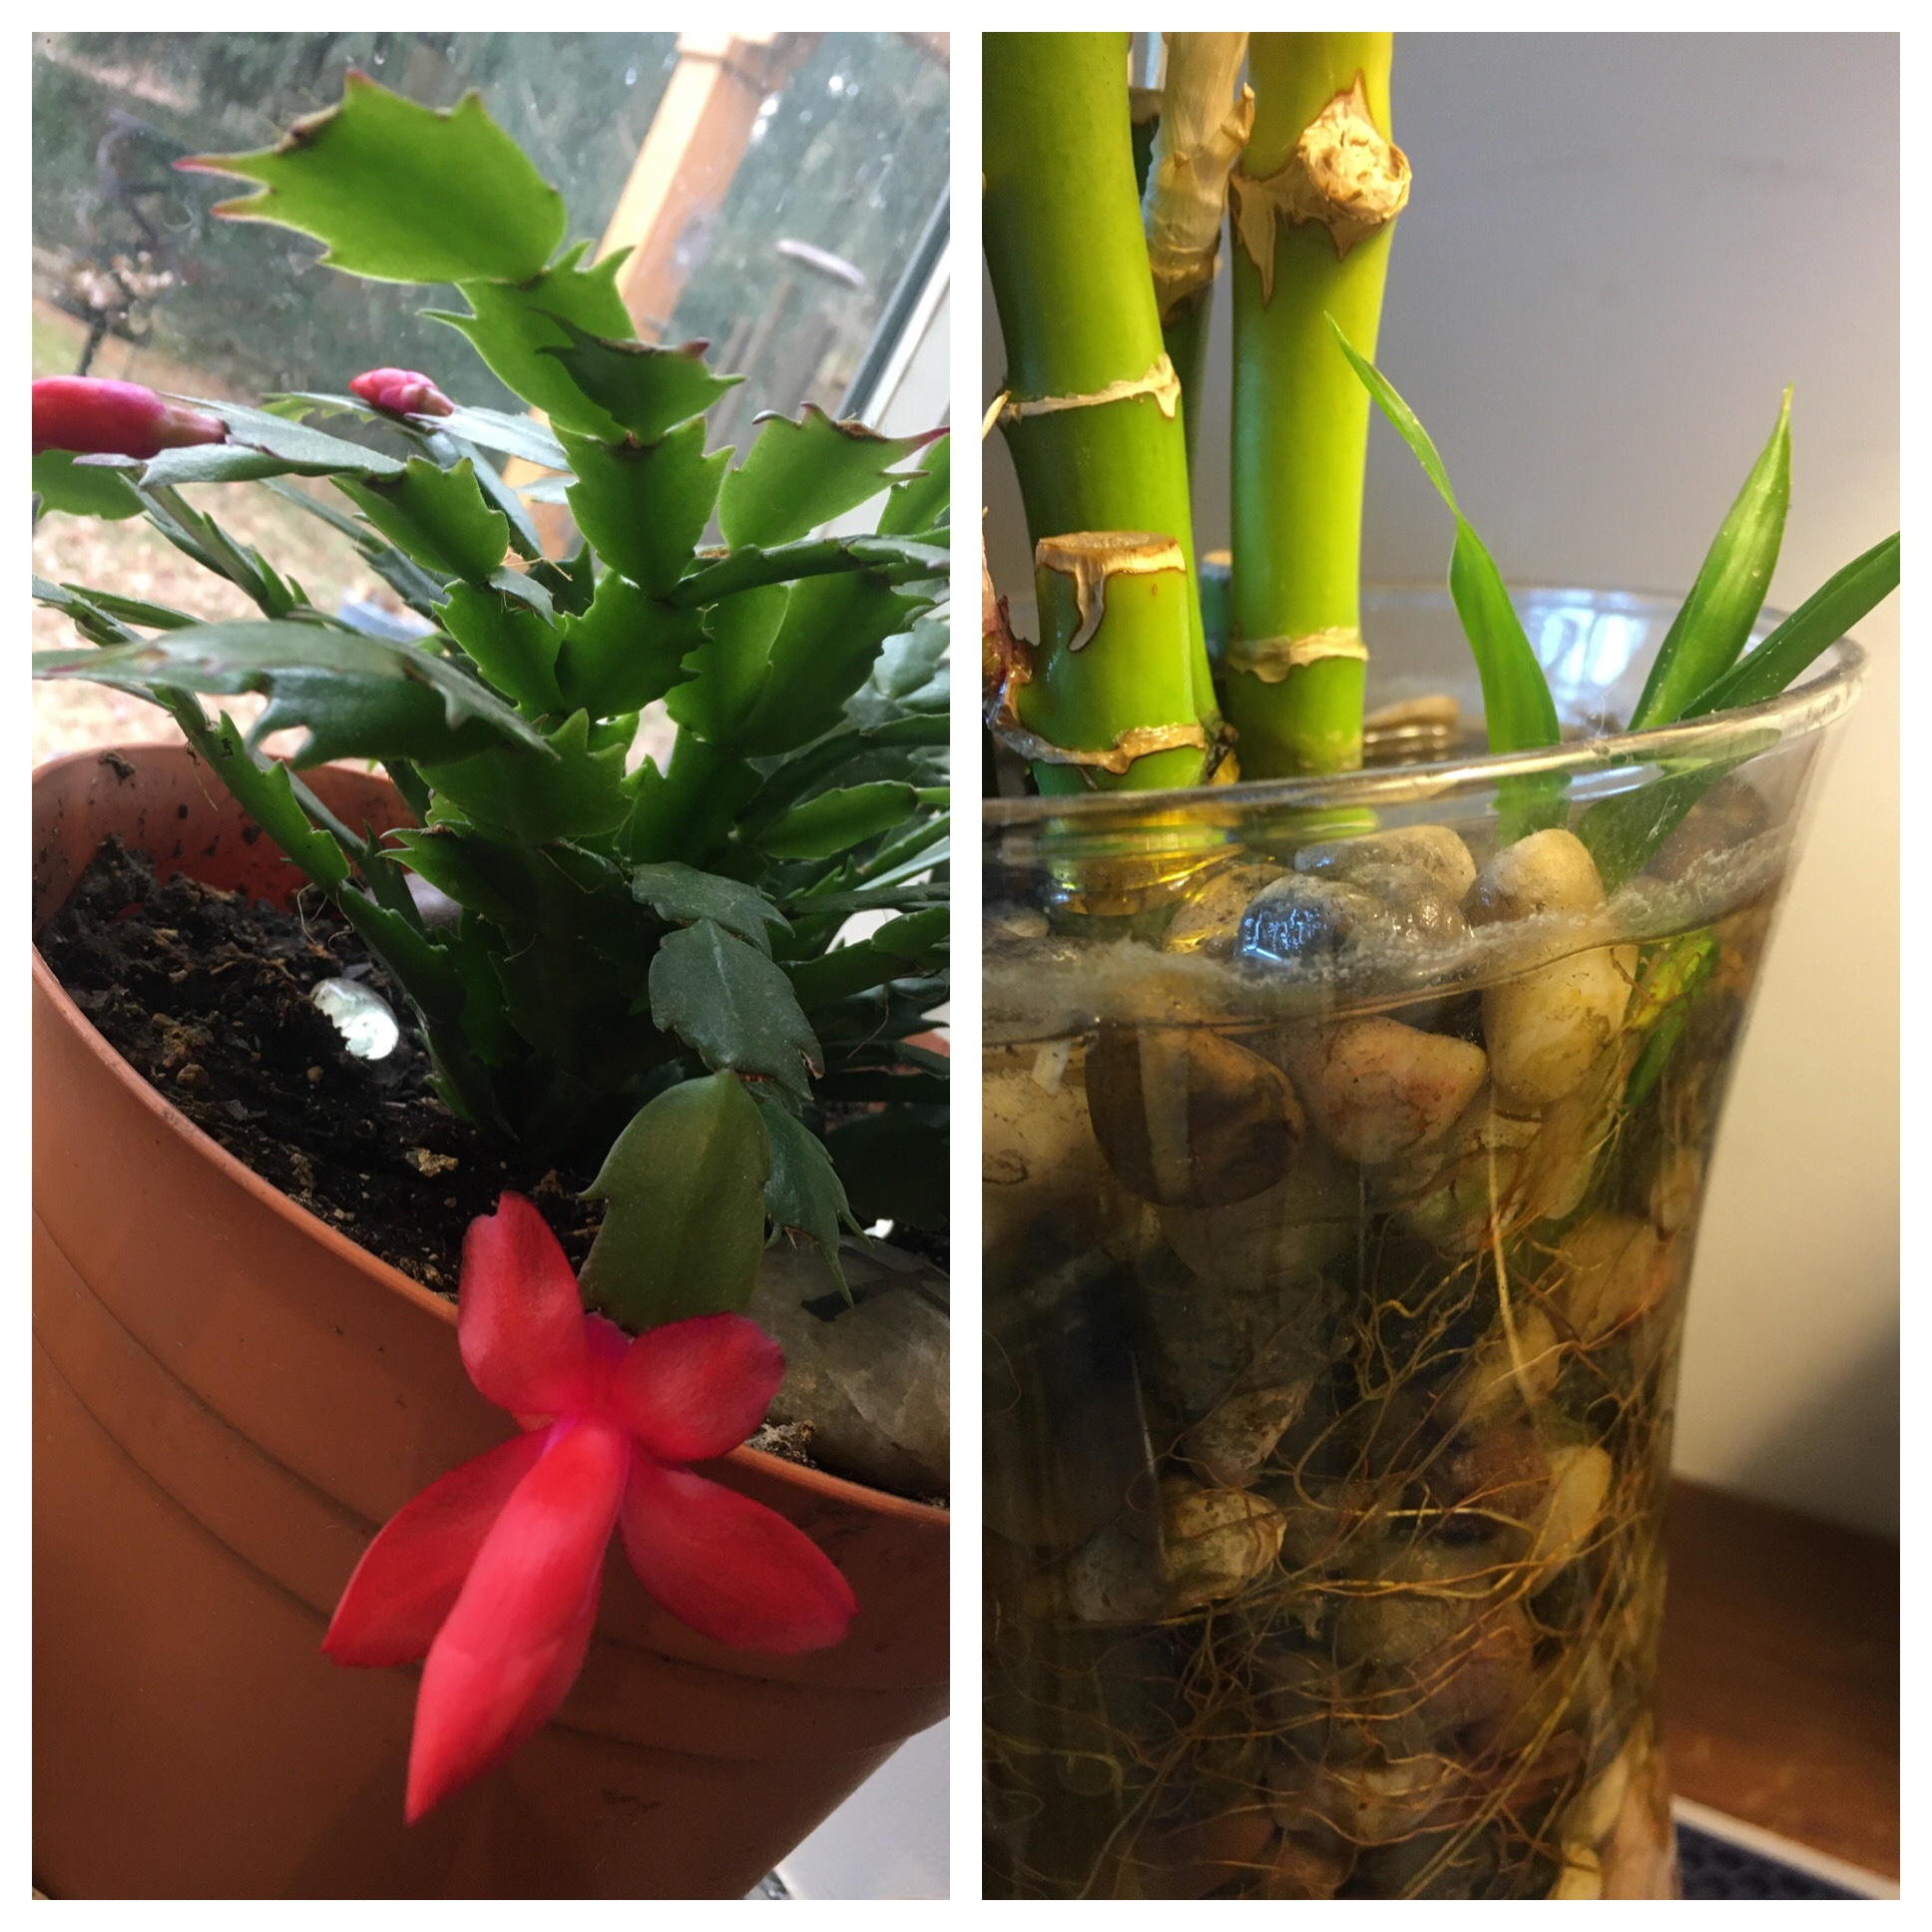 A red Christmas cactus and a new shoot on a bamboo plant